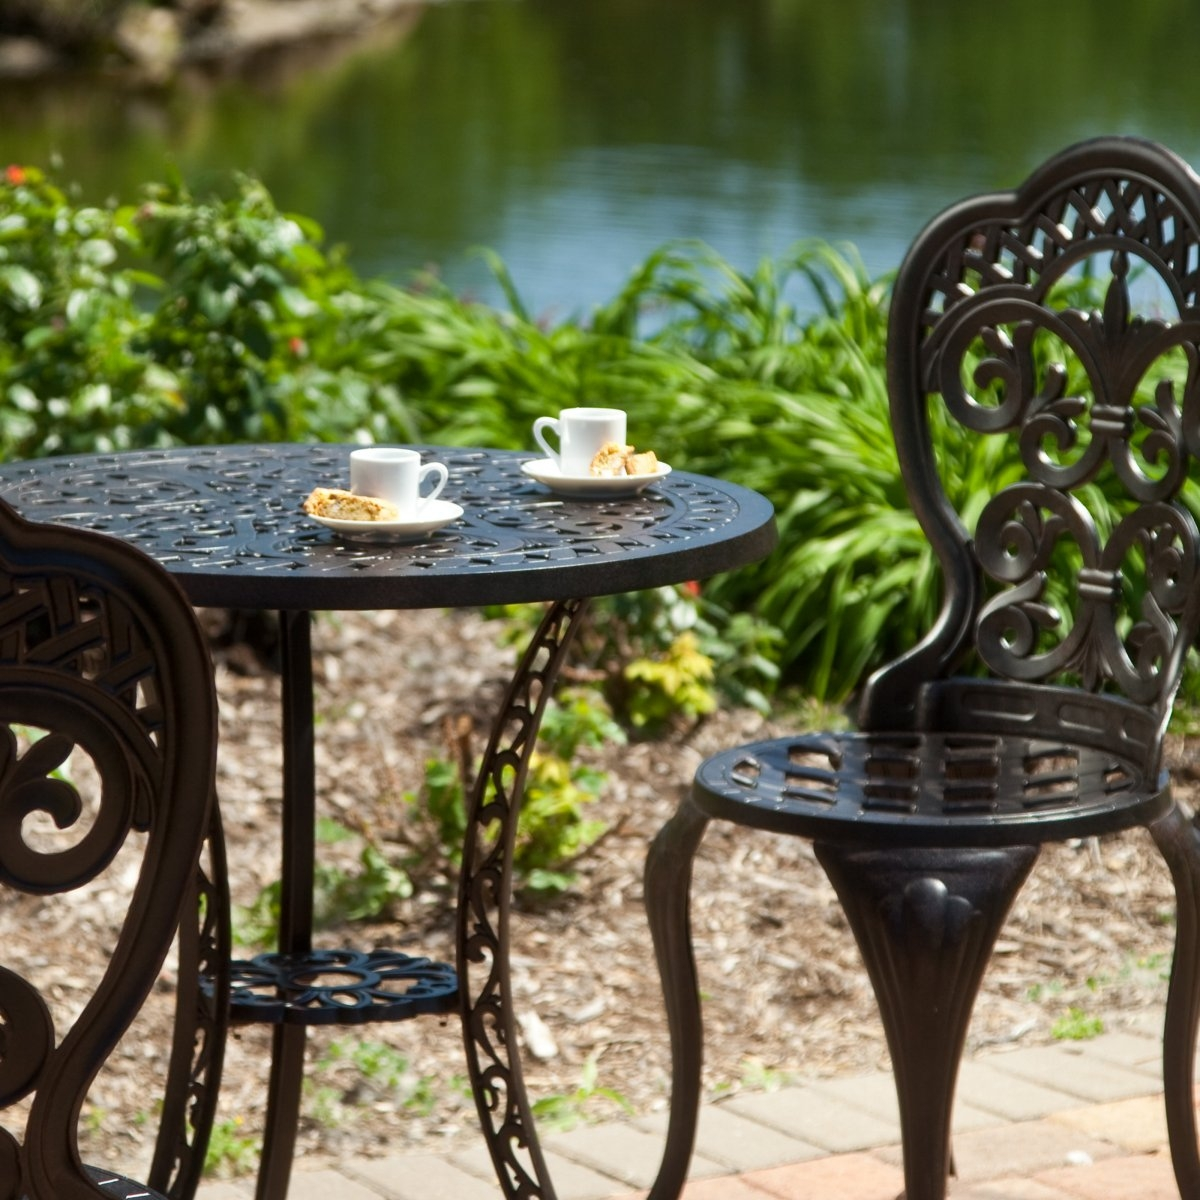 3 piece cast aluminum outdoor bistro set with table and 2 chairs 3abs21901 - Garden Furniture 3 Piece